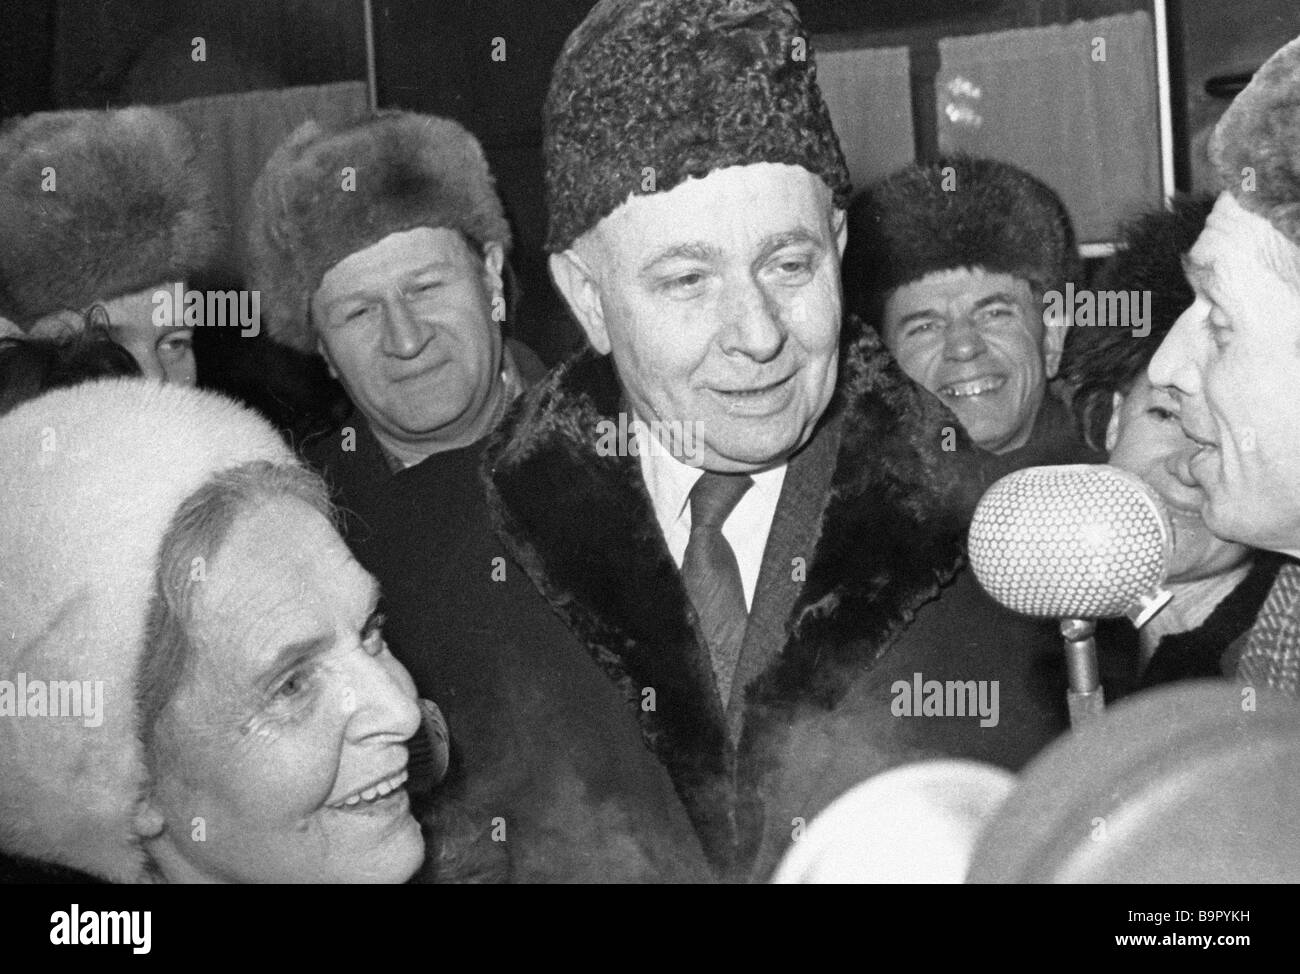 French writers Elza Triole left and Louis Aragon right at Belarussian railway station - Stock Image